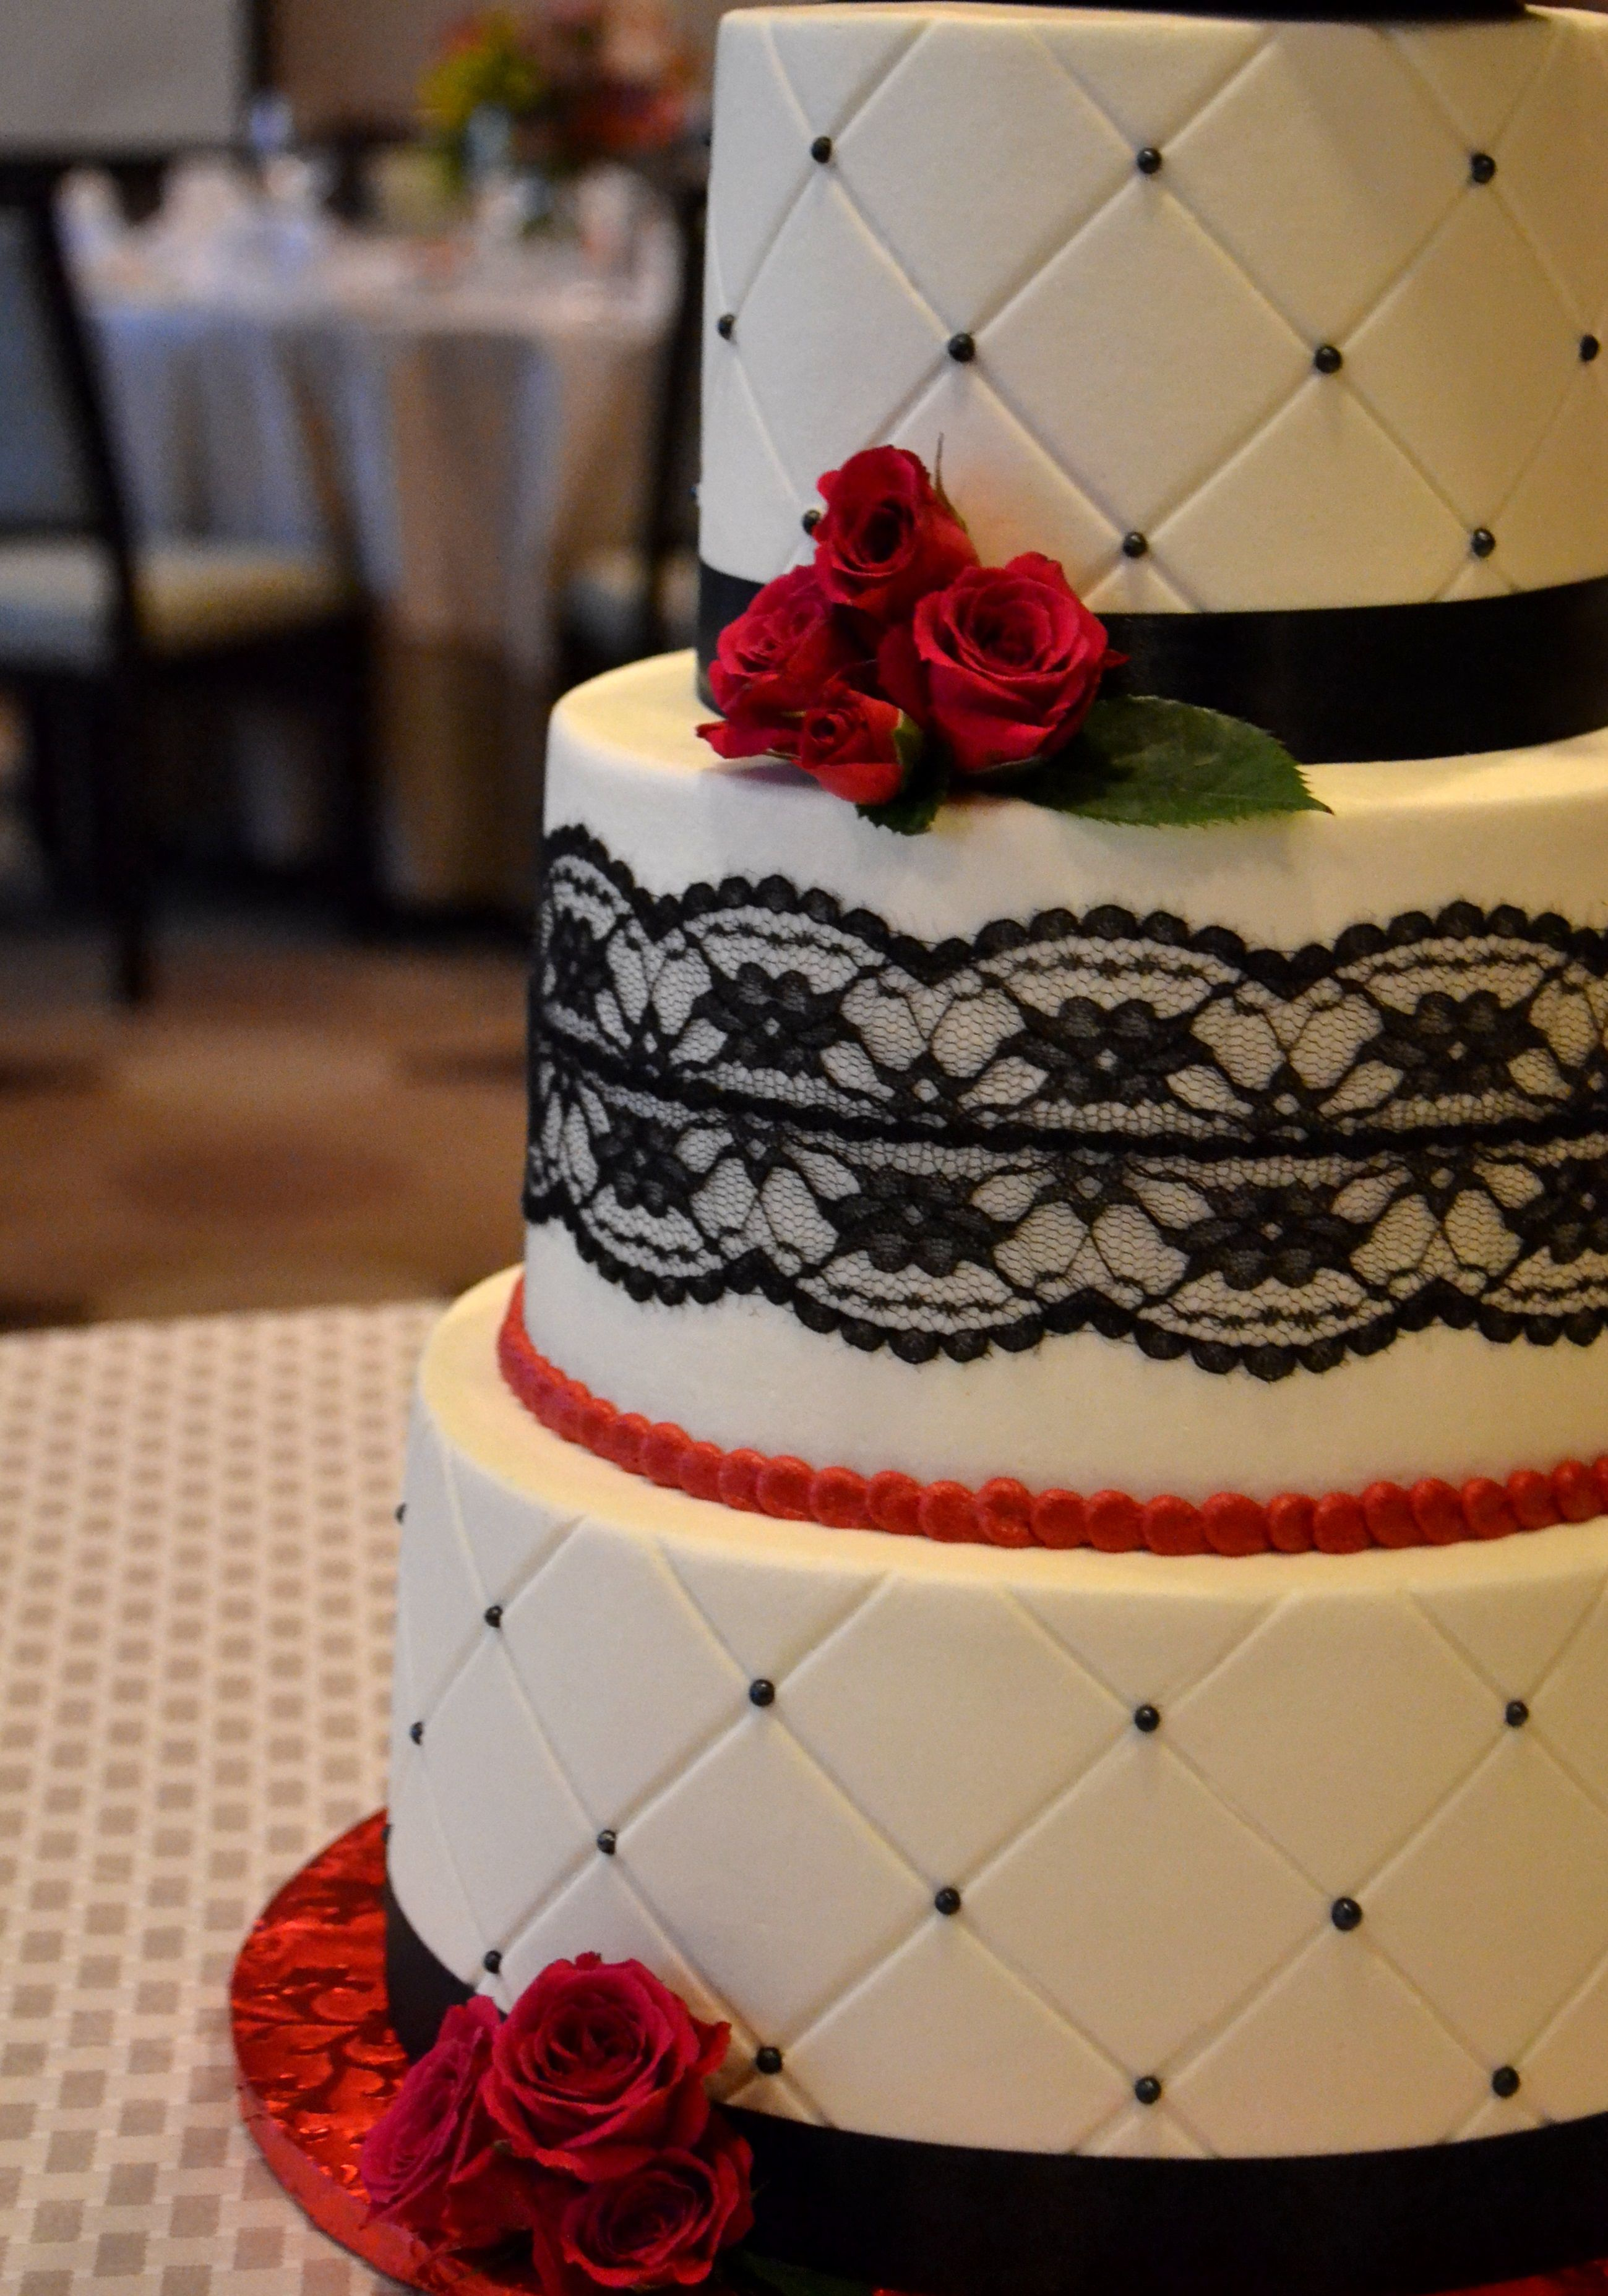 A Quilted Buttercream Wedding Cake With Black Lace And Pearl Details Fresh Red Flower Accent